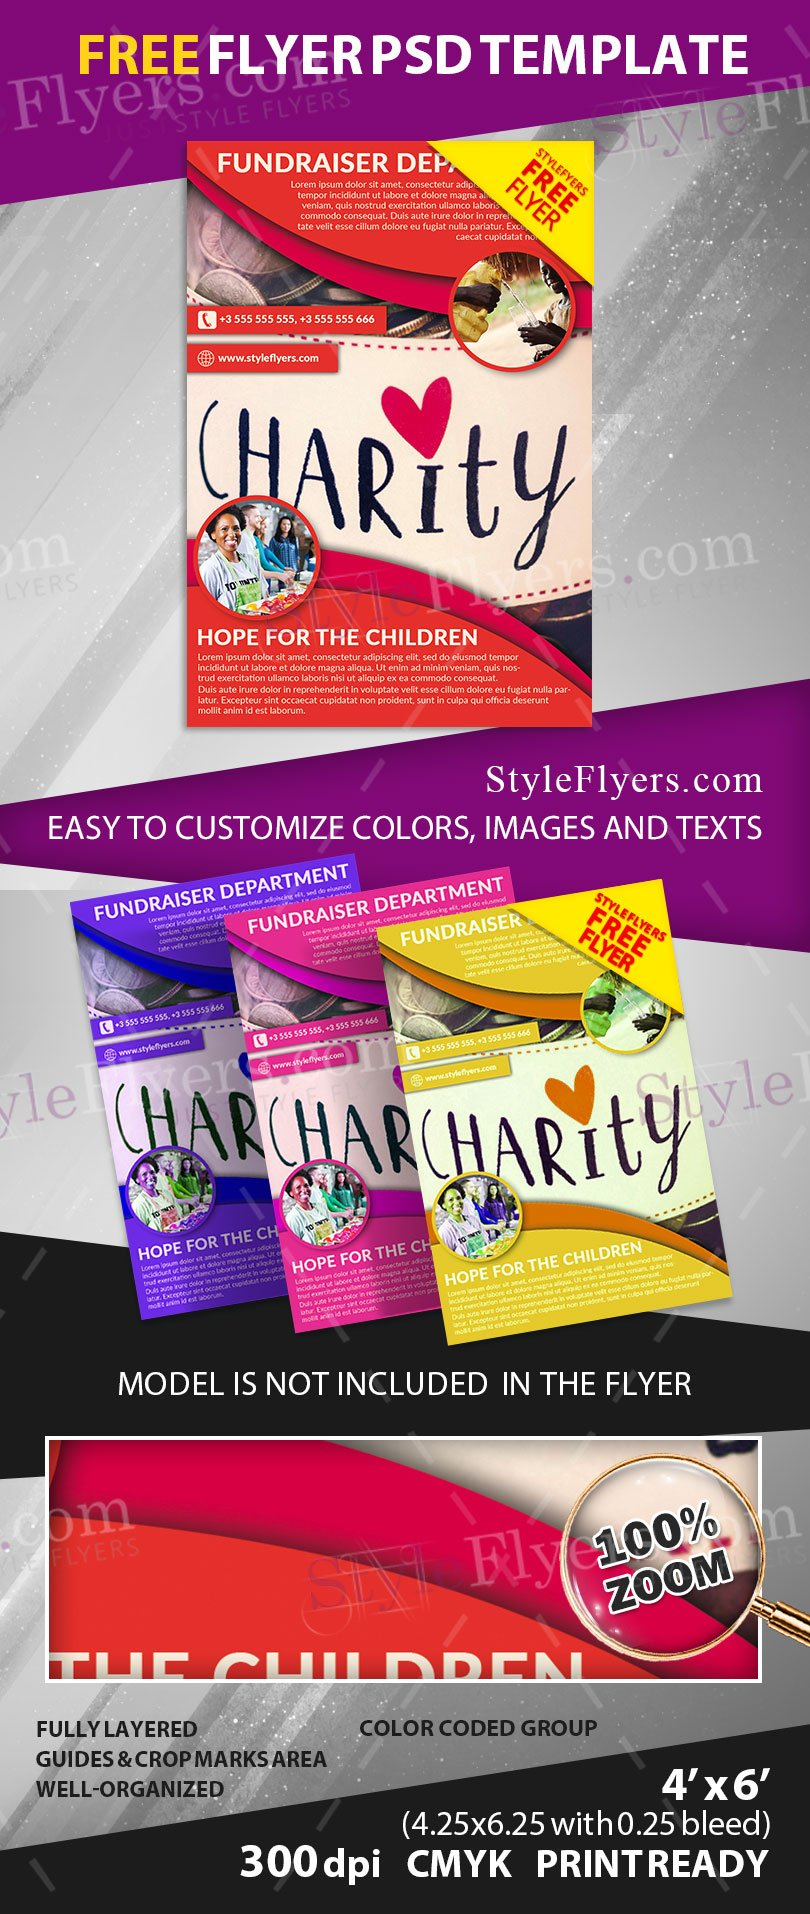 Fundraiser FREE PSD Flyer Template Free Download Styleflyers - Fundraising brochure template